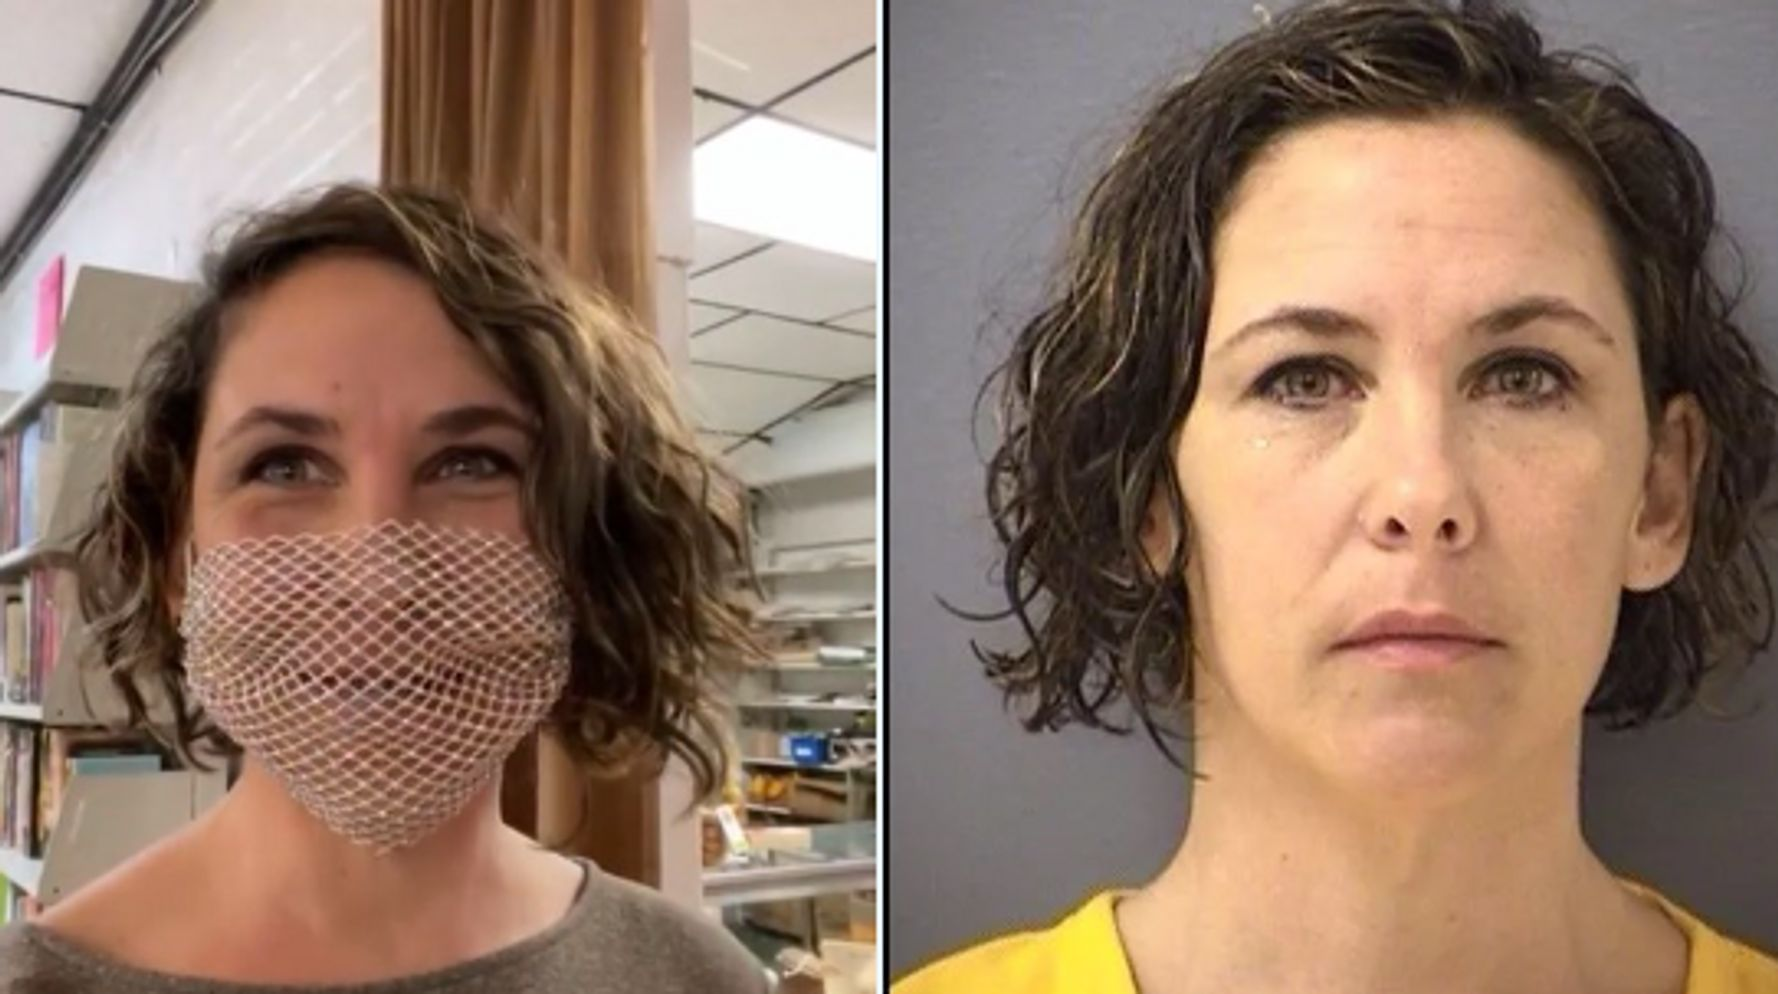 'Bullhorn Lady' In Trouble With Judge After Defying Court With Mesh Mask